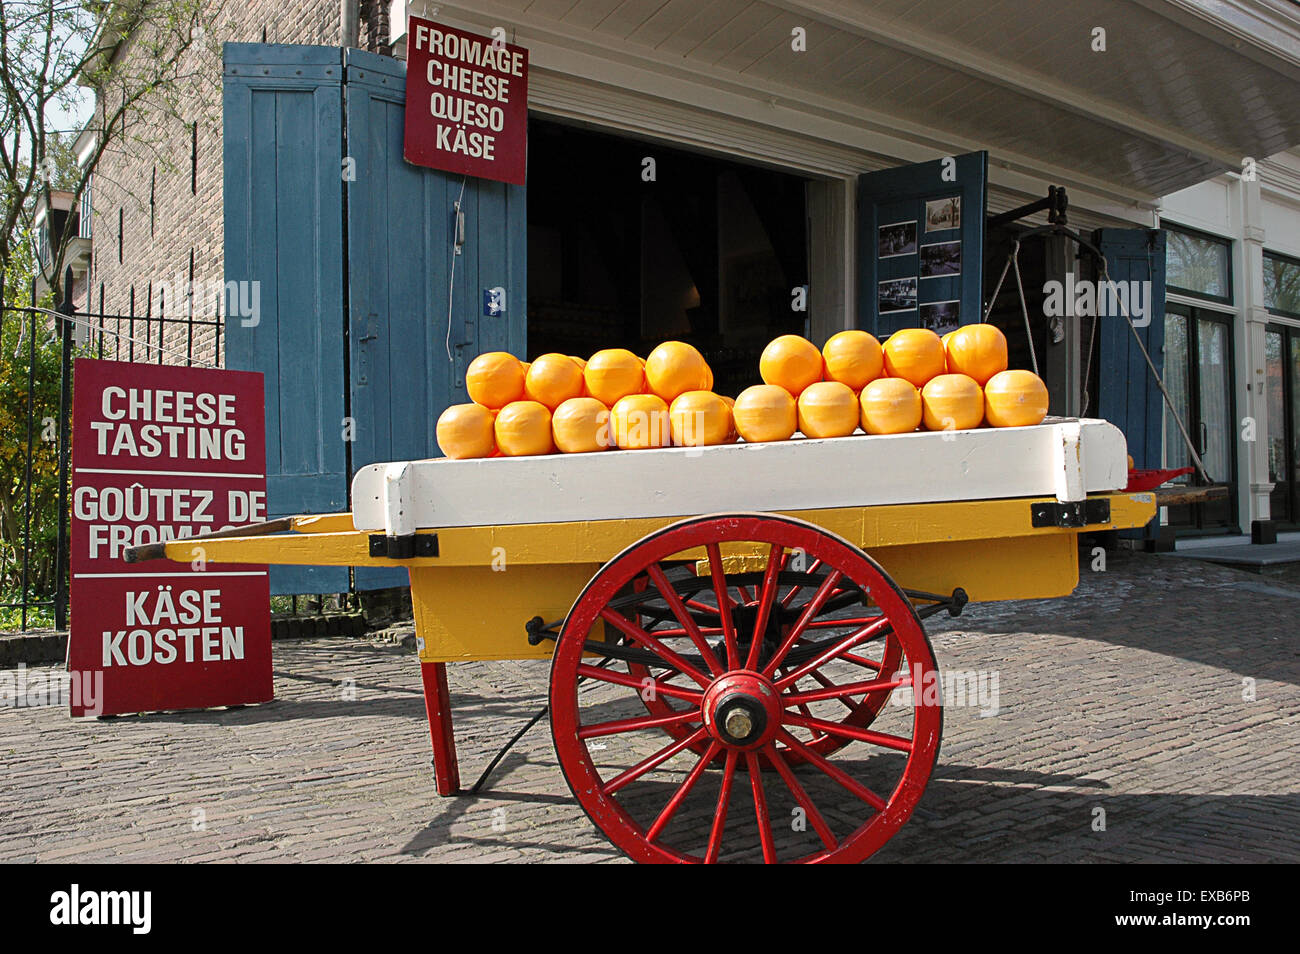 Edam cheese displayed in a store in the country - Stock Image